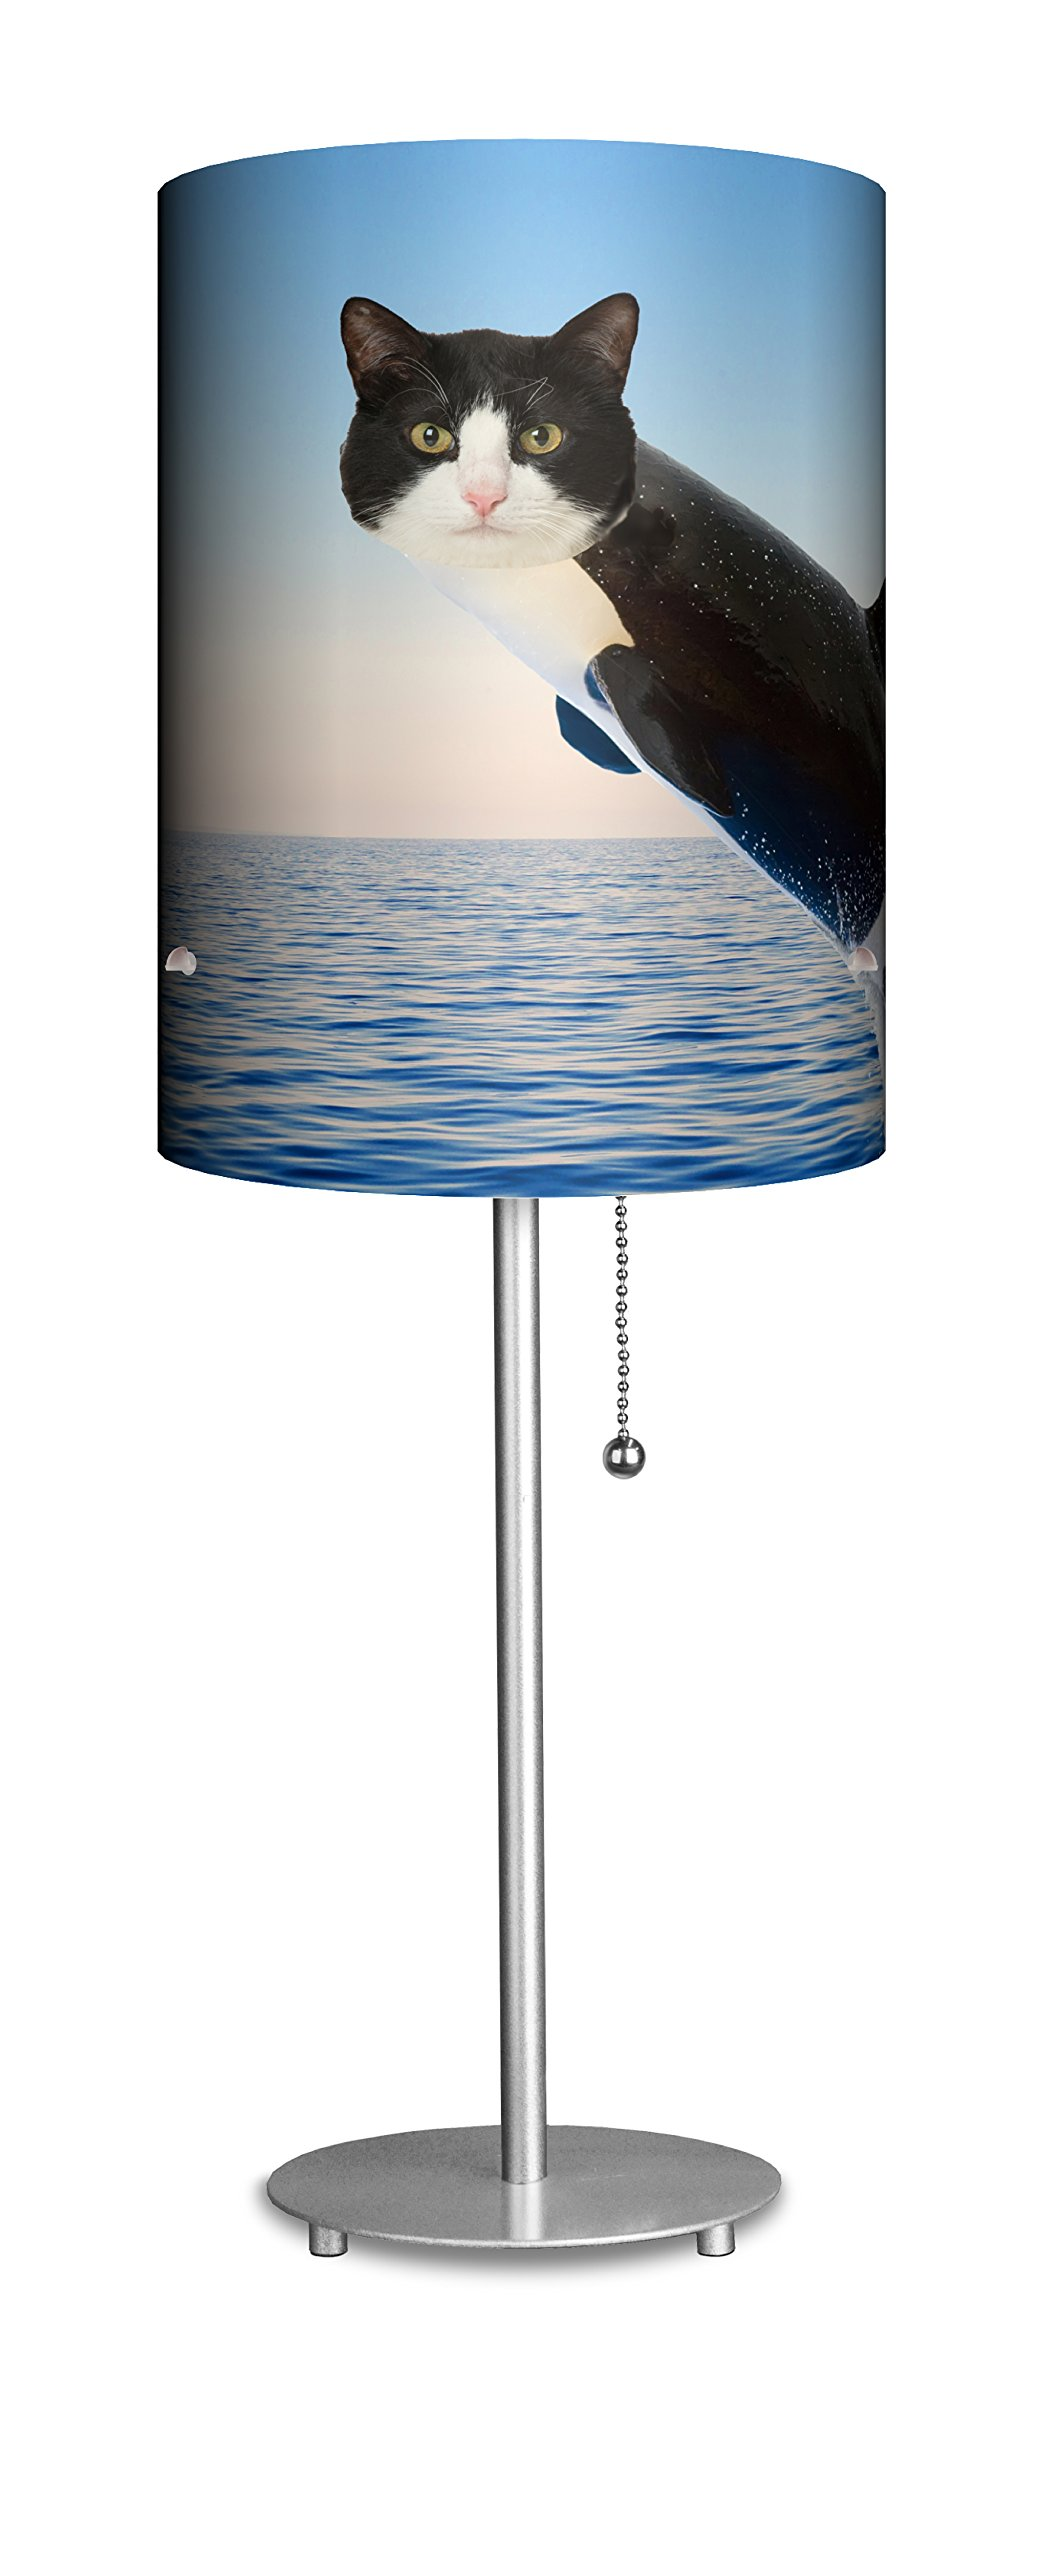 Lampables Animal Kingdom Collection (Orcat) - Table Desk lamp by Lampables